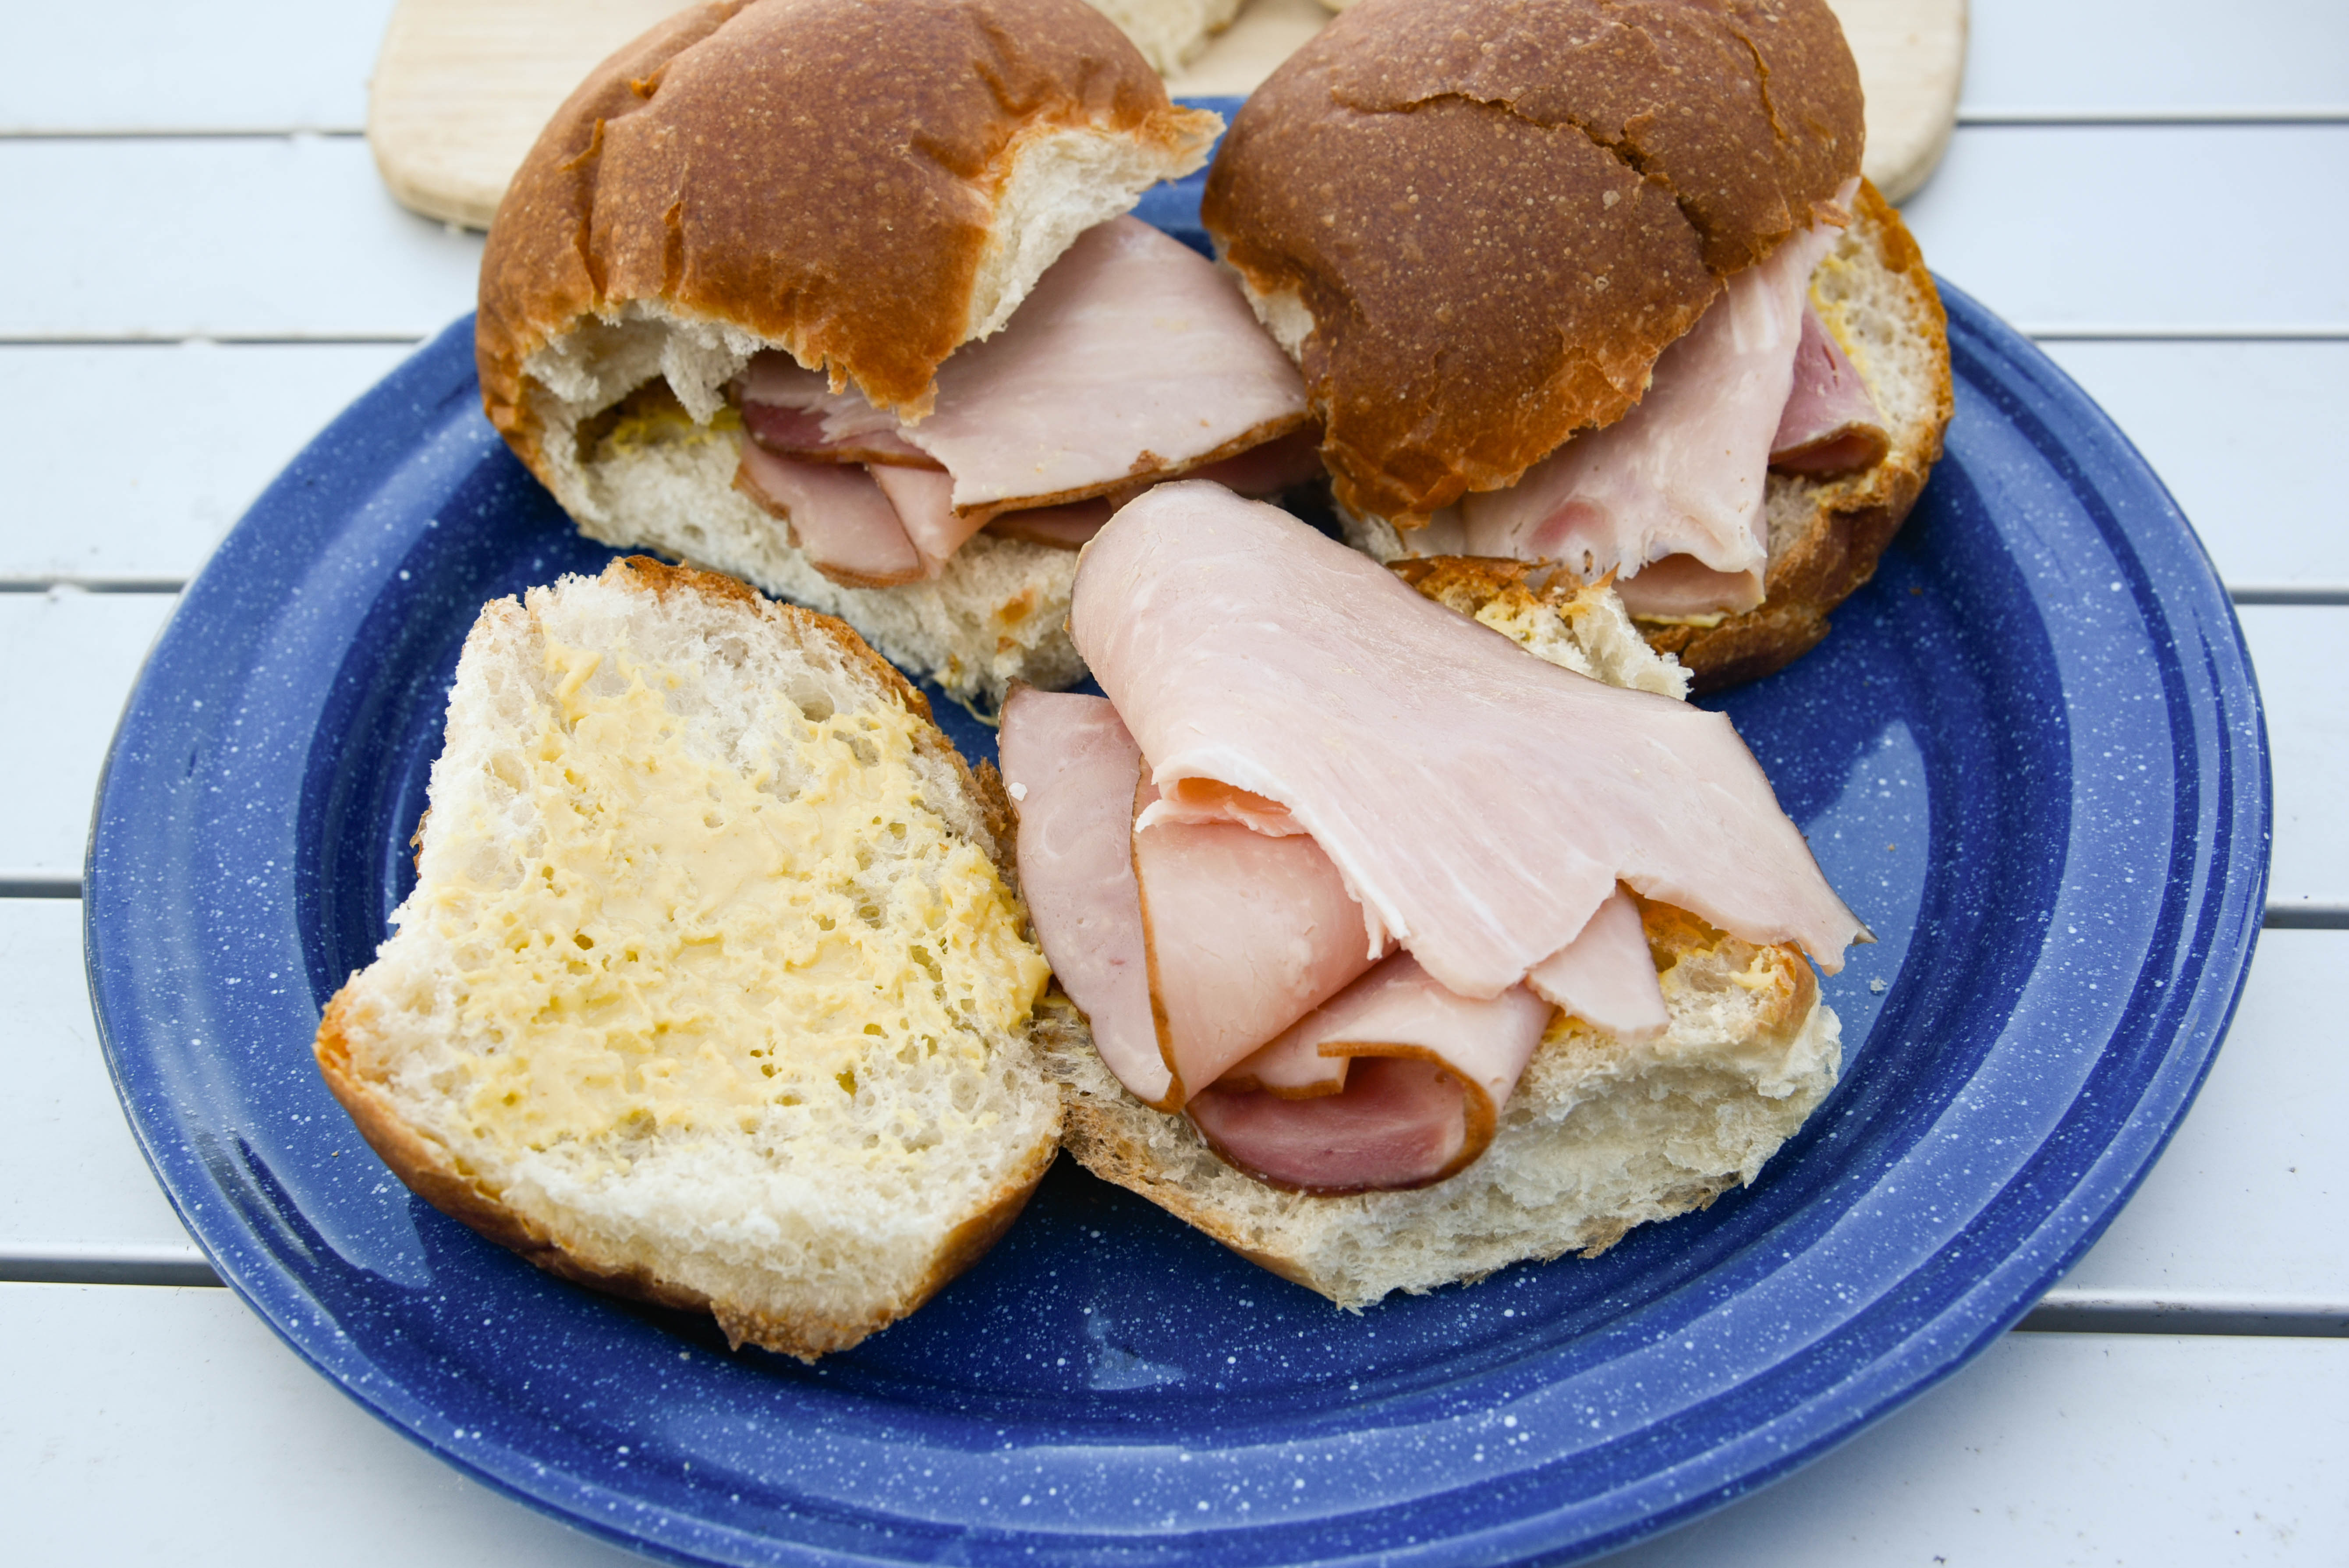 Rolls cut in half with slices of ham placed inside.